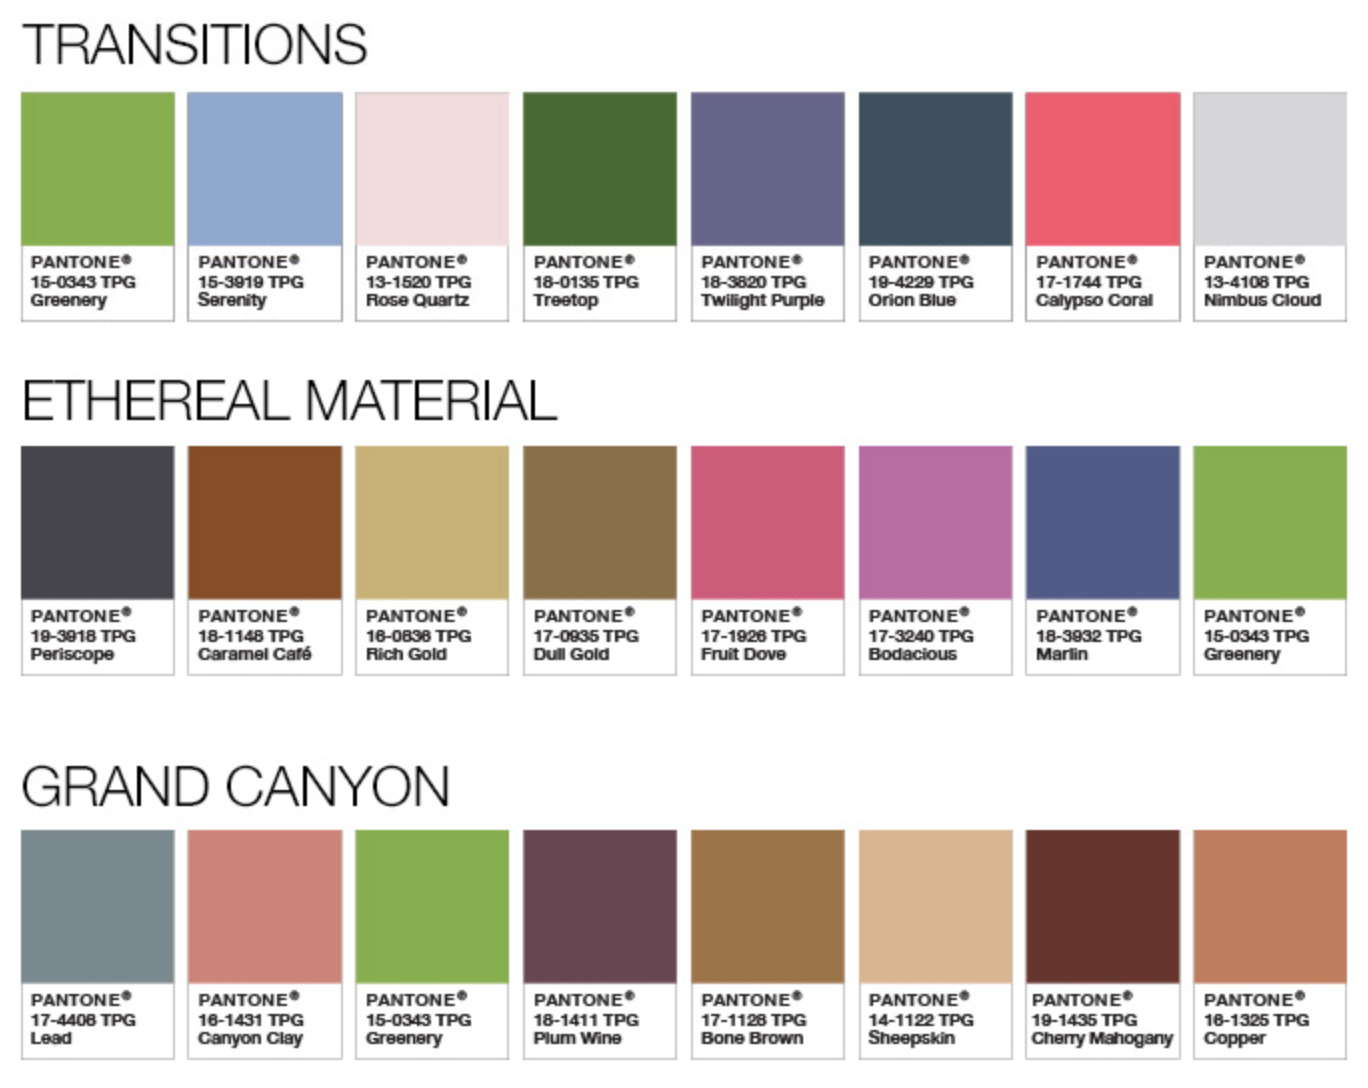 Pantone Color Palettes 2017 - Transitions, Ethereal ...